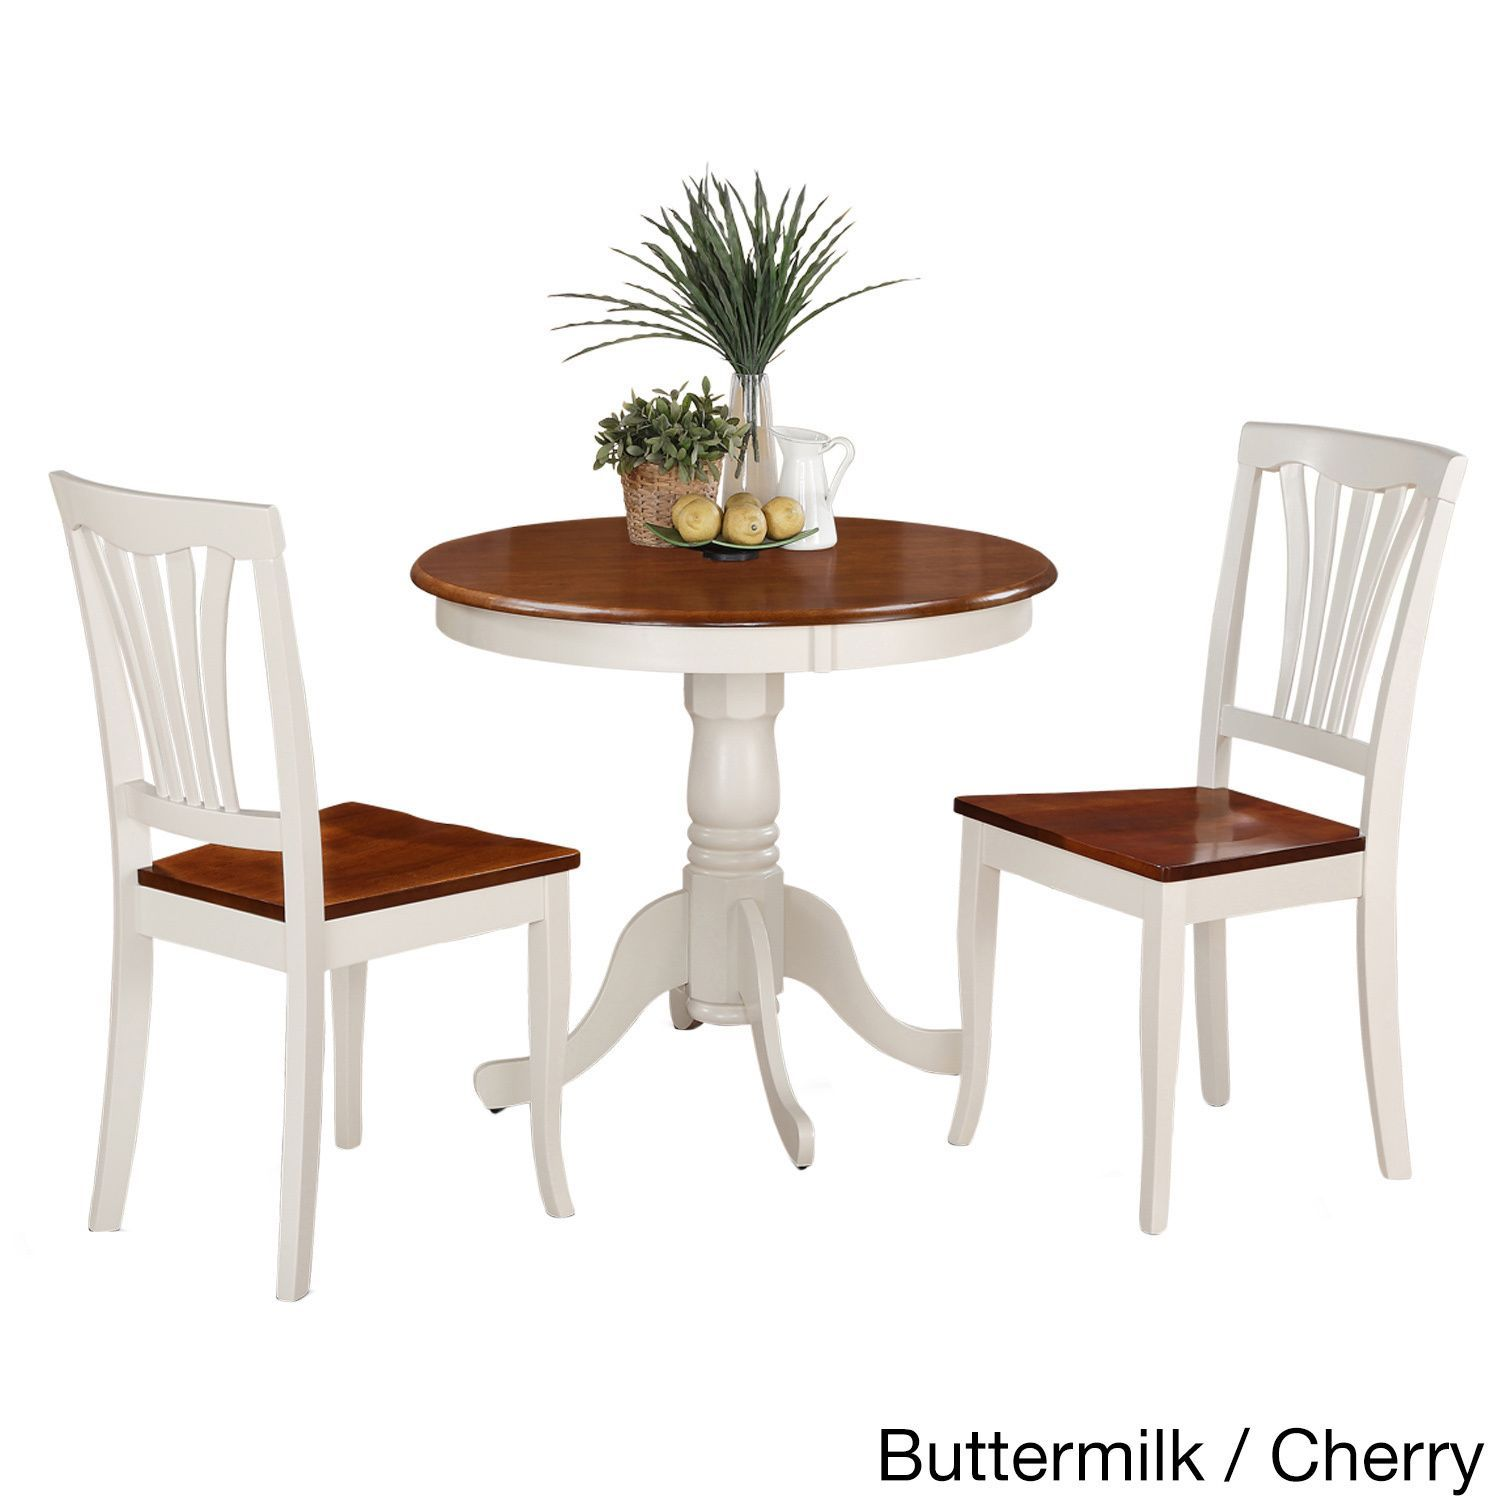 Apartment Kitchen Table And Chairs: 3-Piece Kitchen Nook Dining Set-Small Kitchen Table And 2